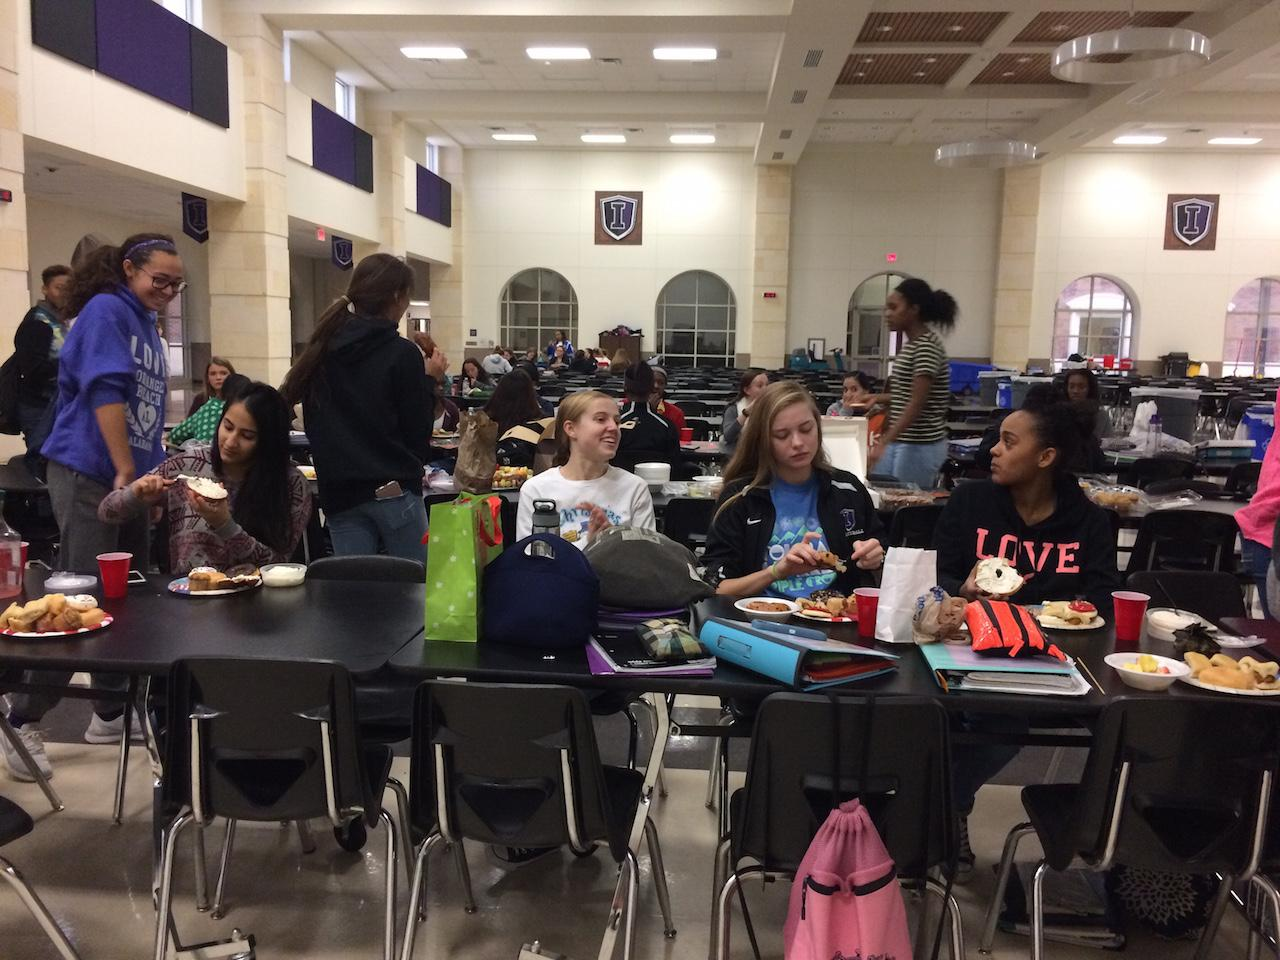 These varsity basketball players bond and connect over a breakfast social.